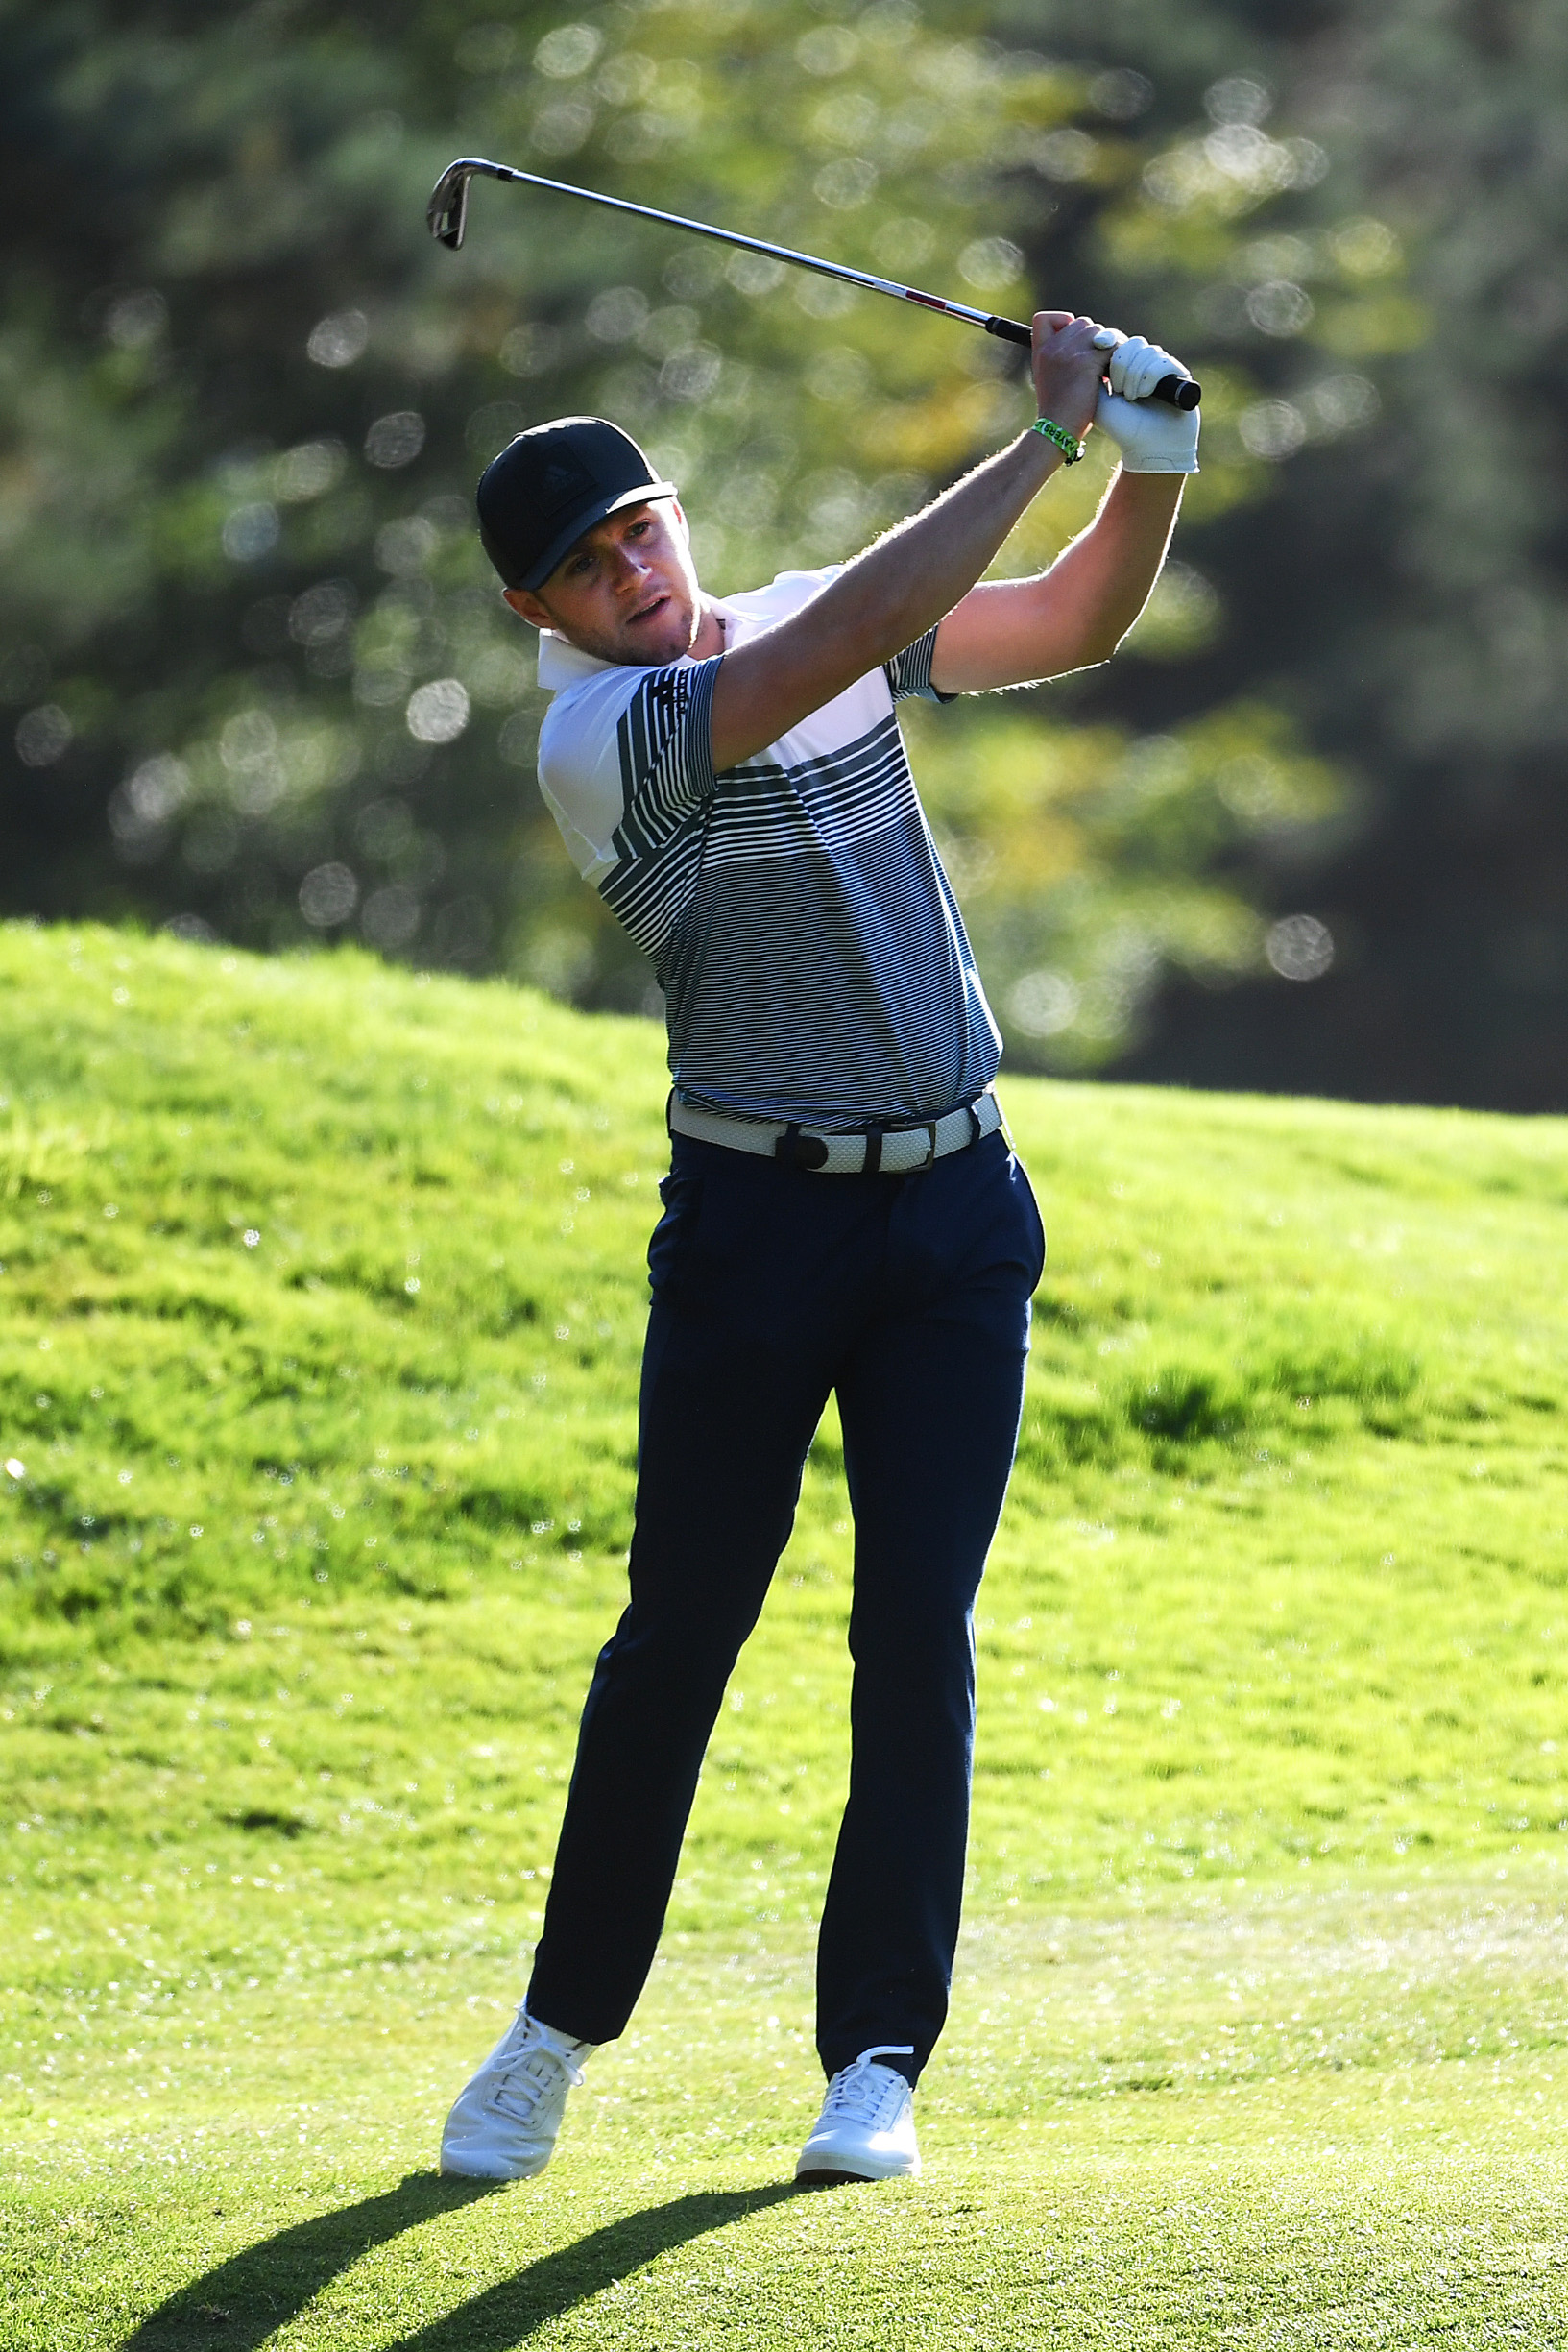 VIRGINIA WATER, ENGLAND - SEPTEMBER 18: Niall Horan plays a shot during the Pro-Am tournament prior to the start of the BMW PGA Championship at Wentworth Golf Club on September 18, 2019 in Virginia Water, United Kingdom. (Photo by Ross Kinnaird/Getty Images)